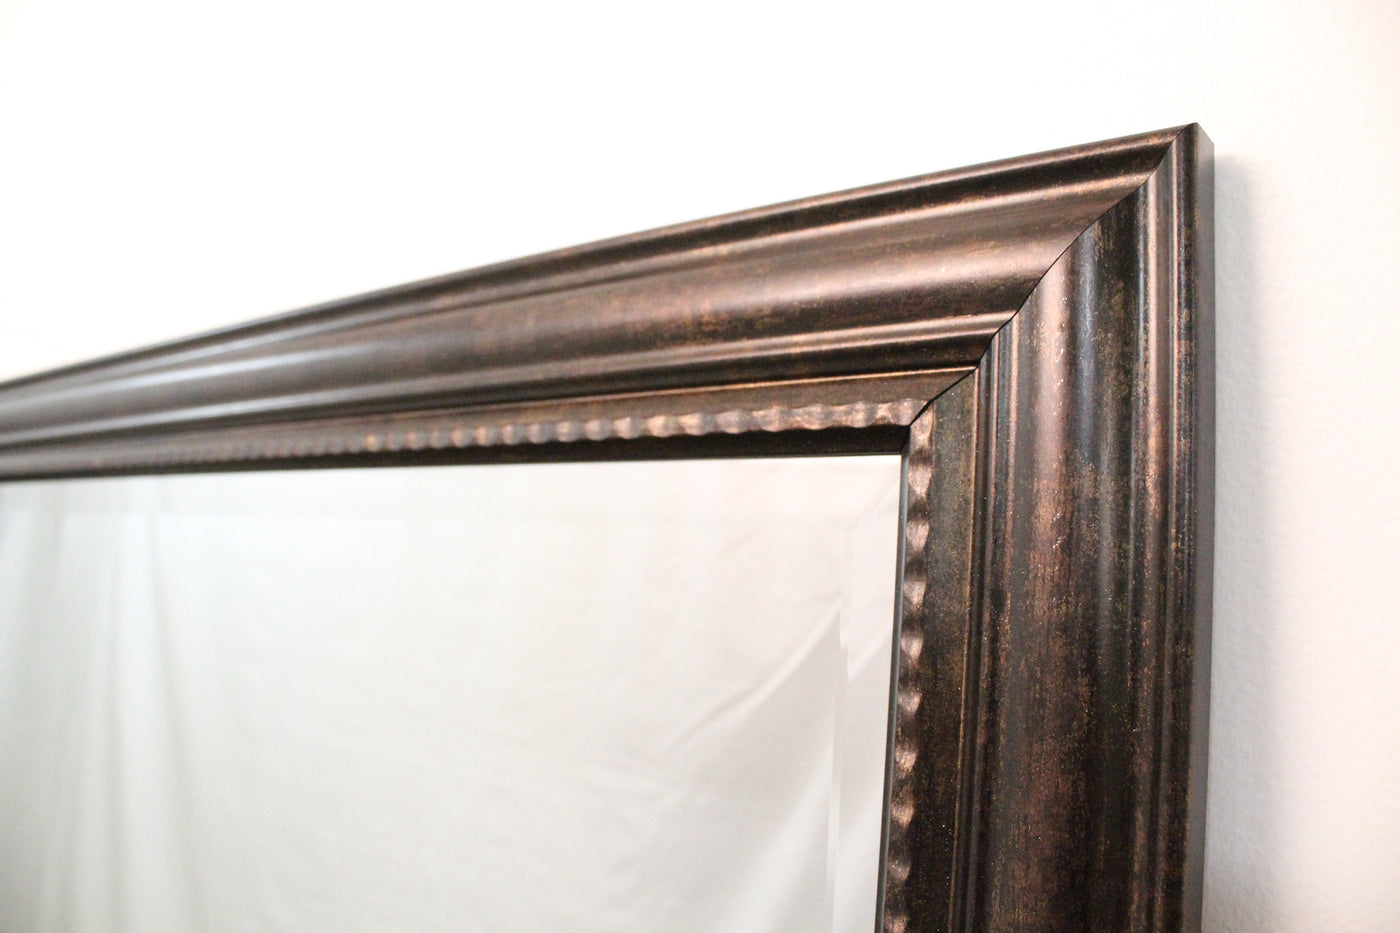 Personalized wall mirror brookside rich wood like finish bevels brookside rich wood like finish with bevels beaded interior wall mirror 42 brookside frame jeuxipadfo Image collections